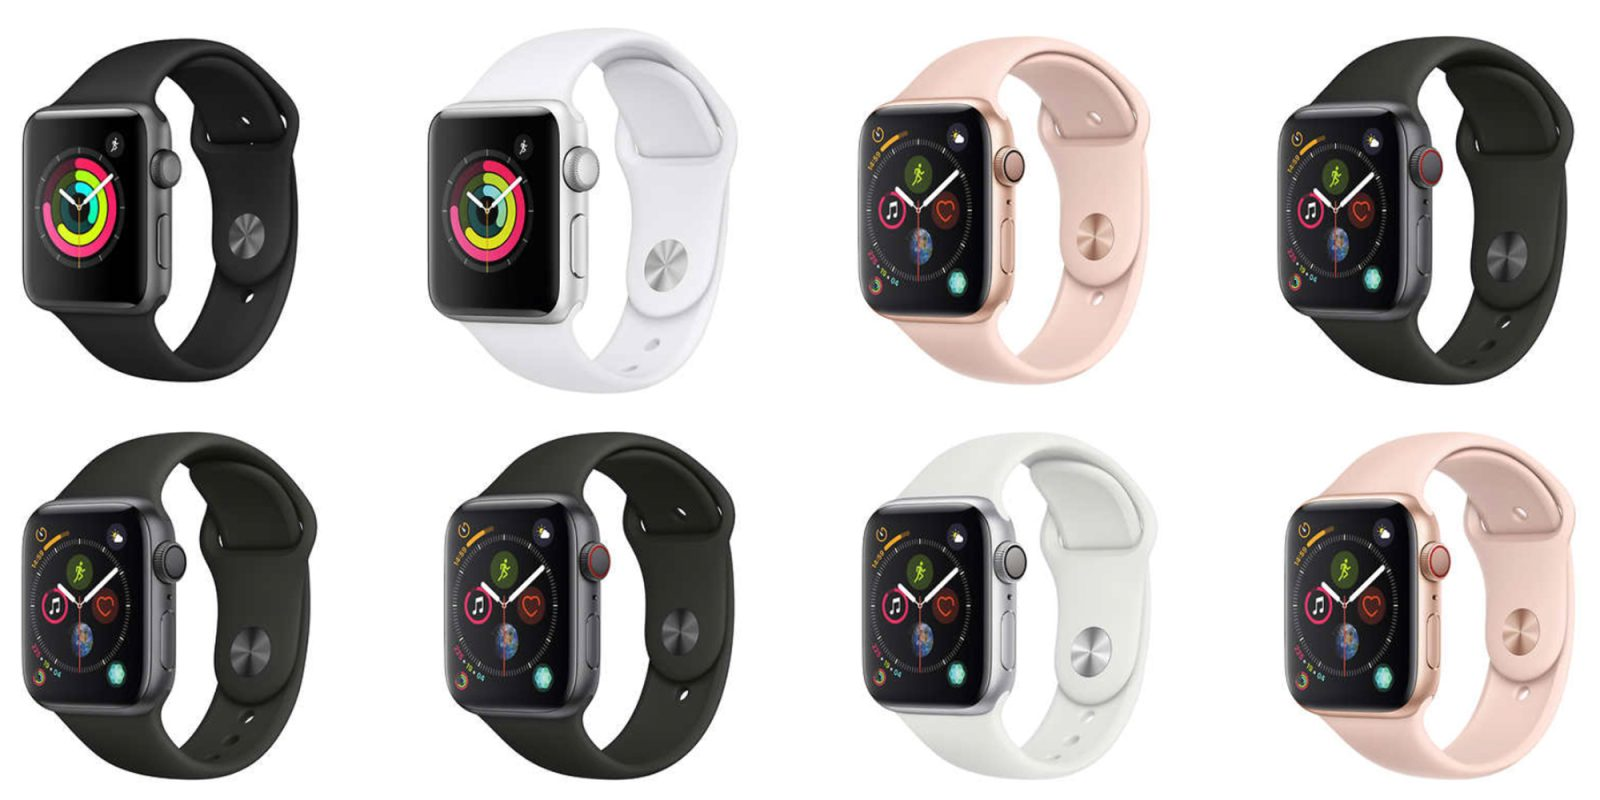 Today only, nearly every Apple Watch Series 4 model is $75 off